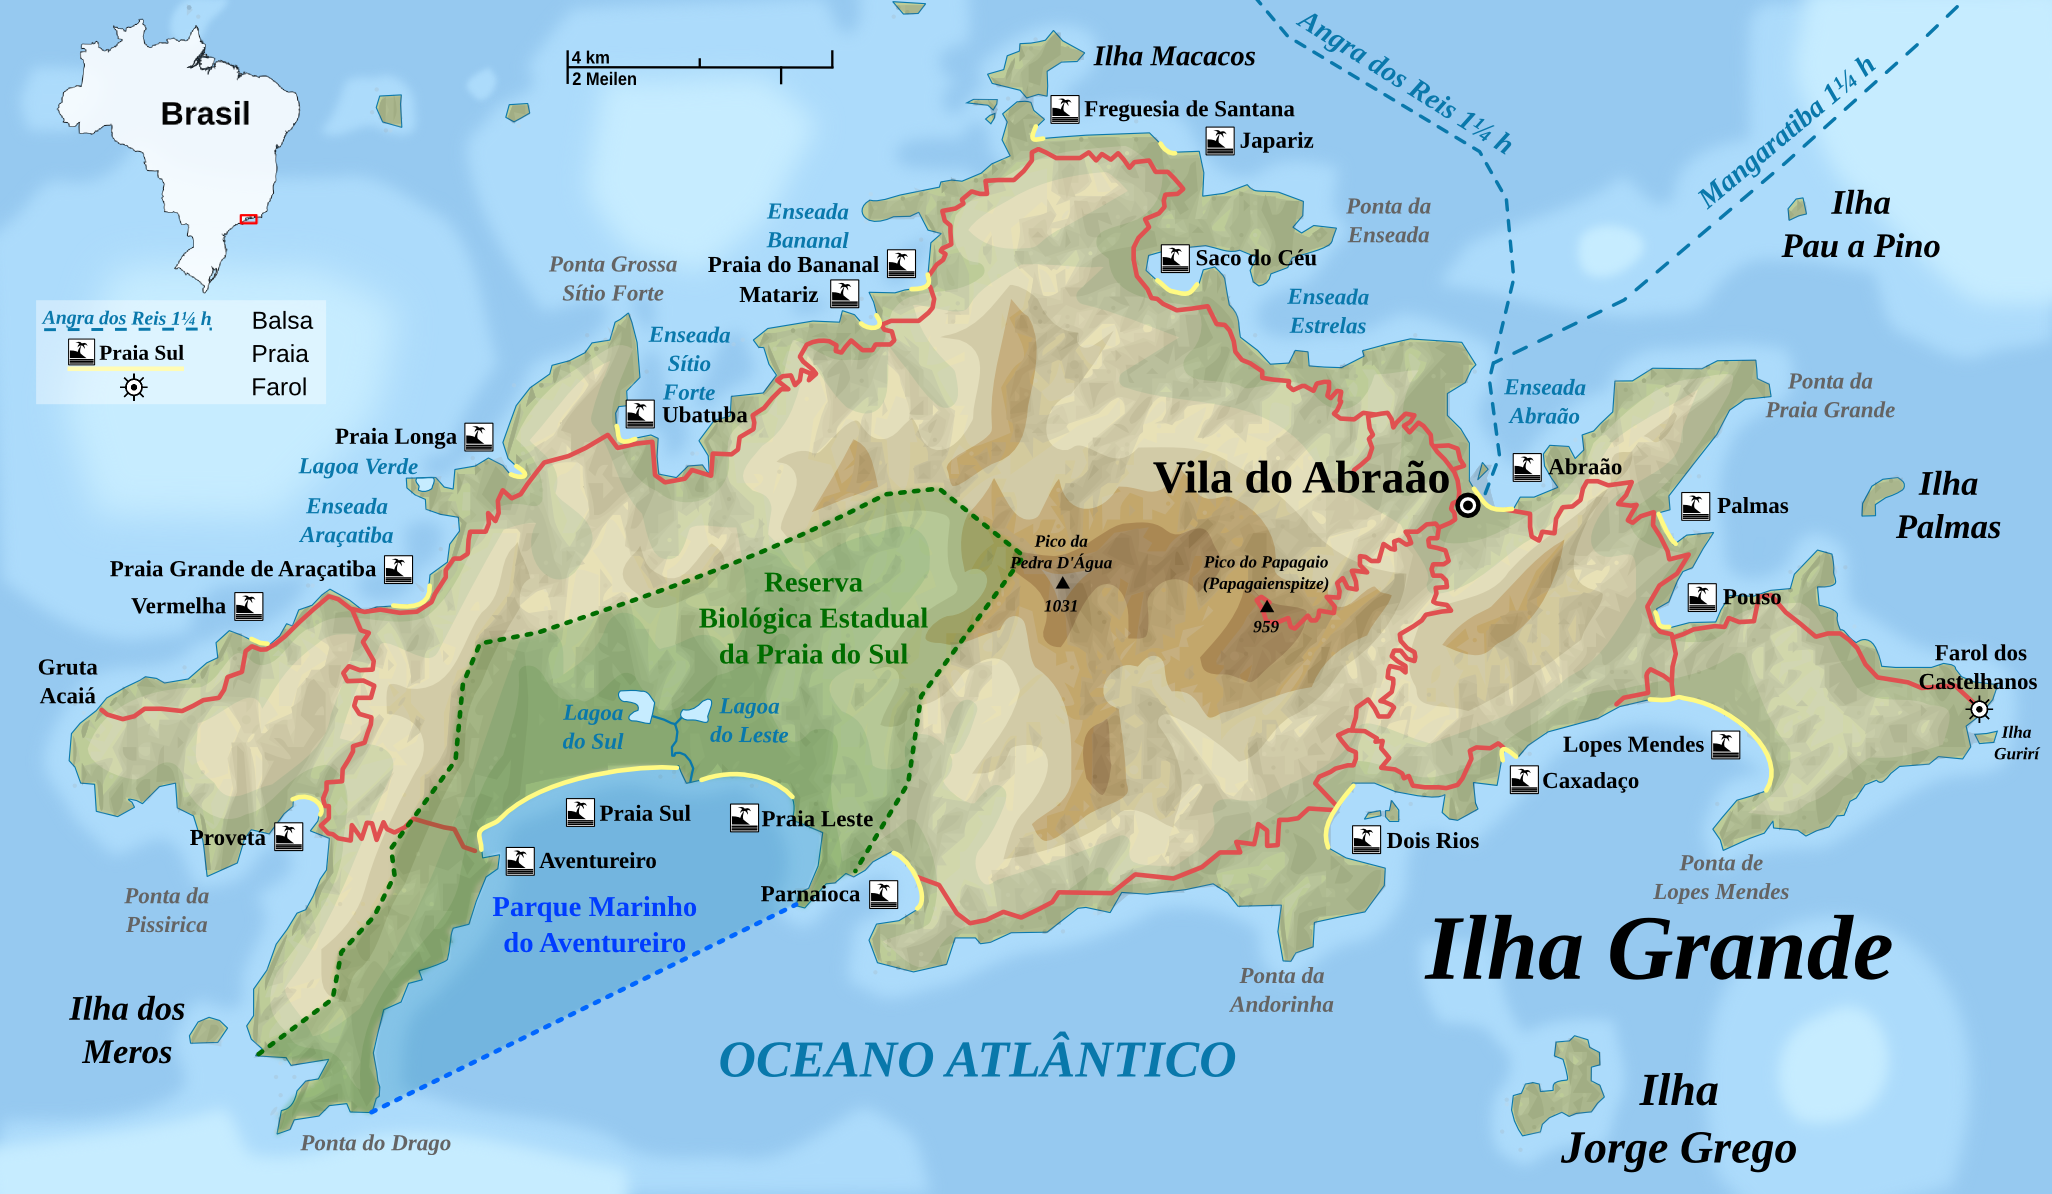 Ilha_Grande_topographic_map-PT.png